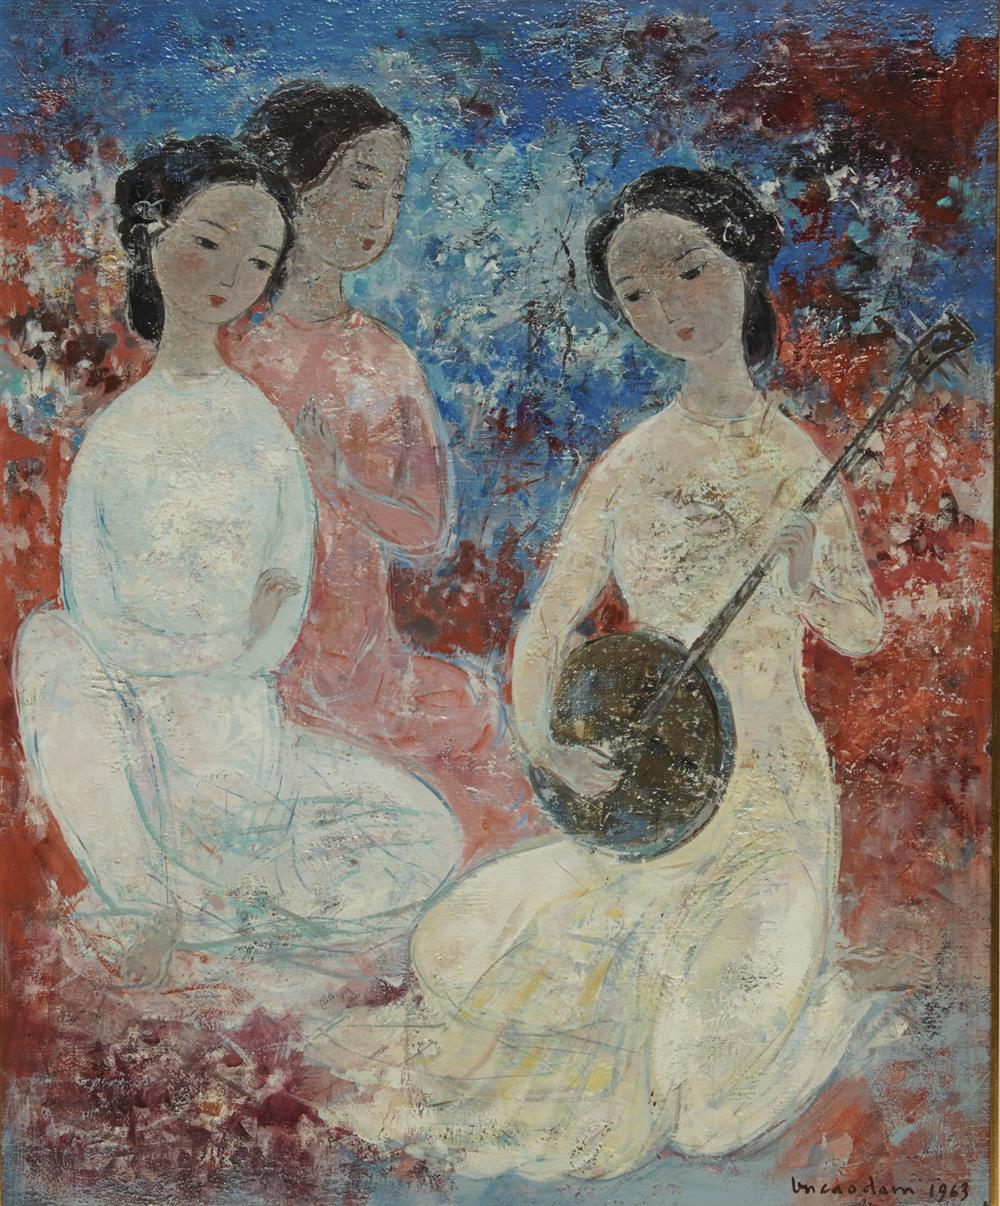 VU CAO DAM, (French, 1908-2000), Les Musiciennes, 1963, oil on canvas, 28 3/4 x 23 5/8 in., frame: 36 1/2 x 31 1/2 in.